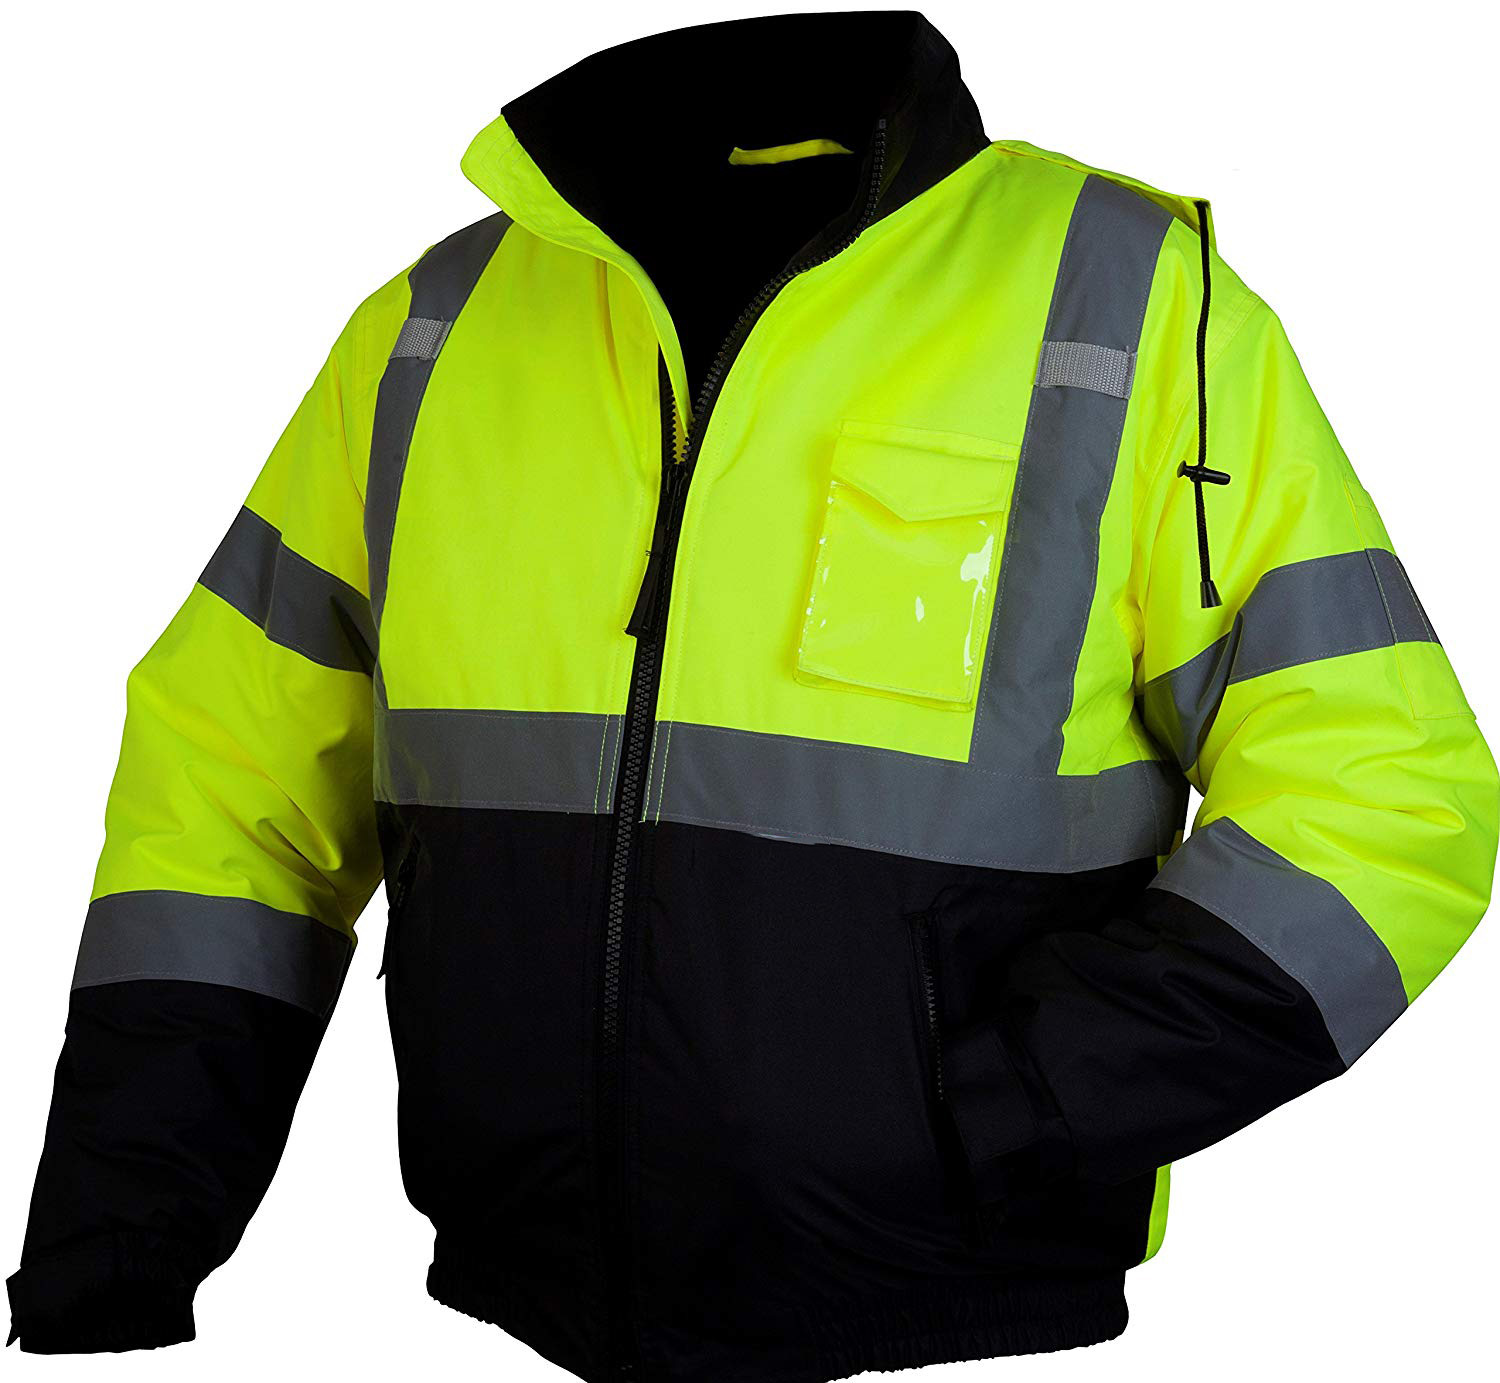 HI VIZ VISIBILTY BOMBER REFLECTIVE CONTRACTOR SECURITY WORK MEN/'S JACKET